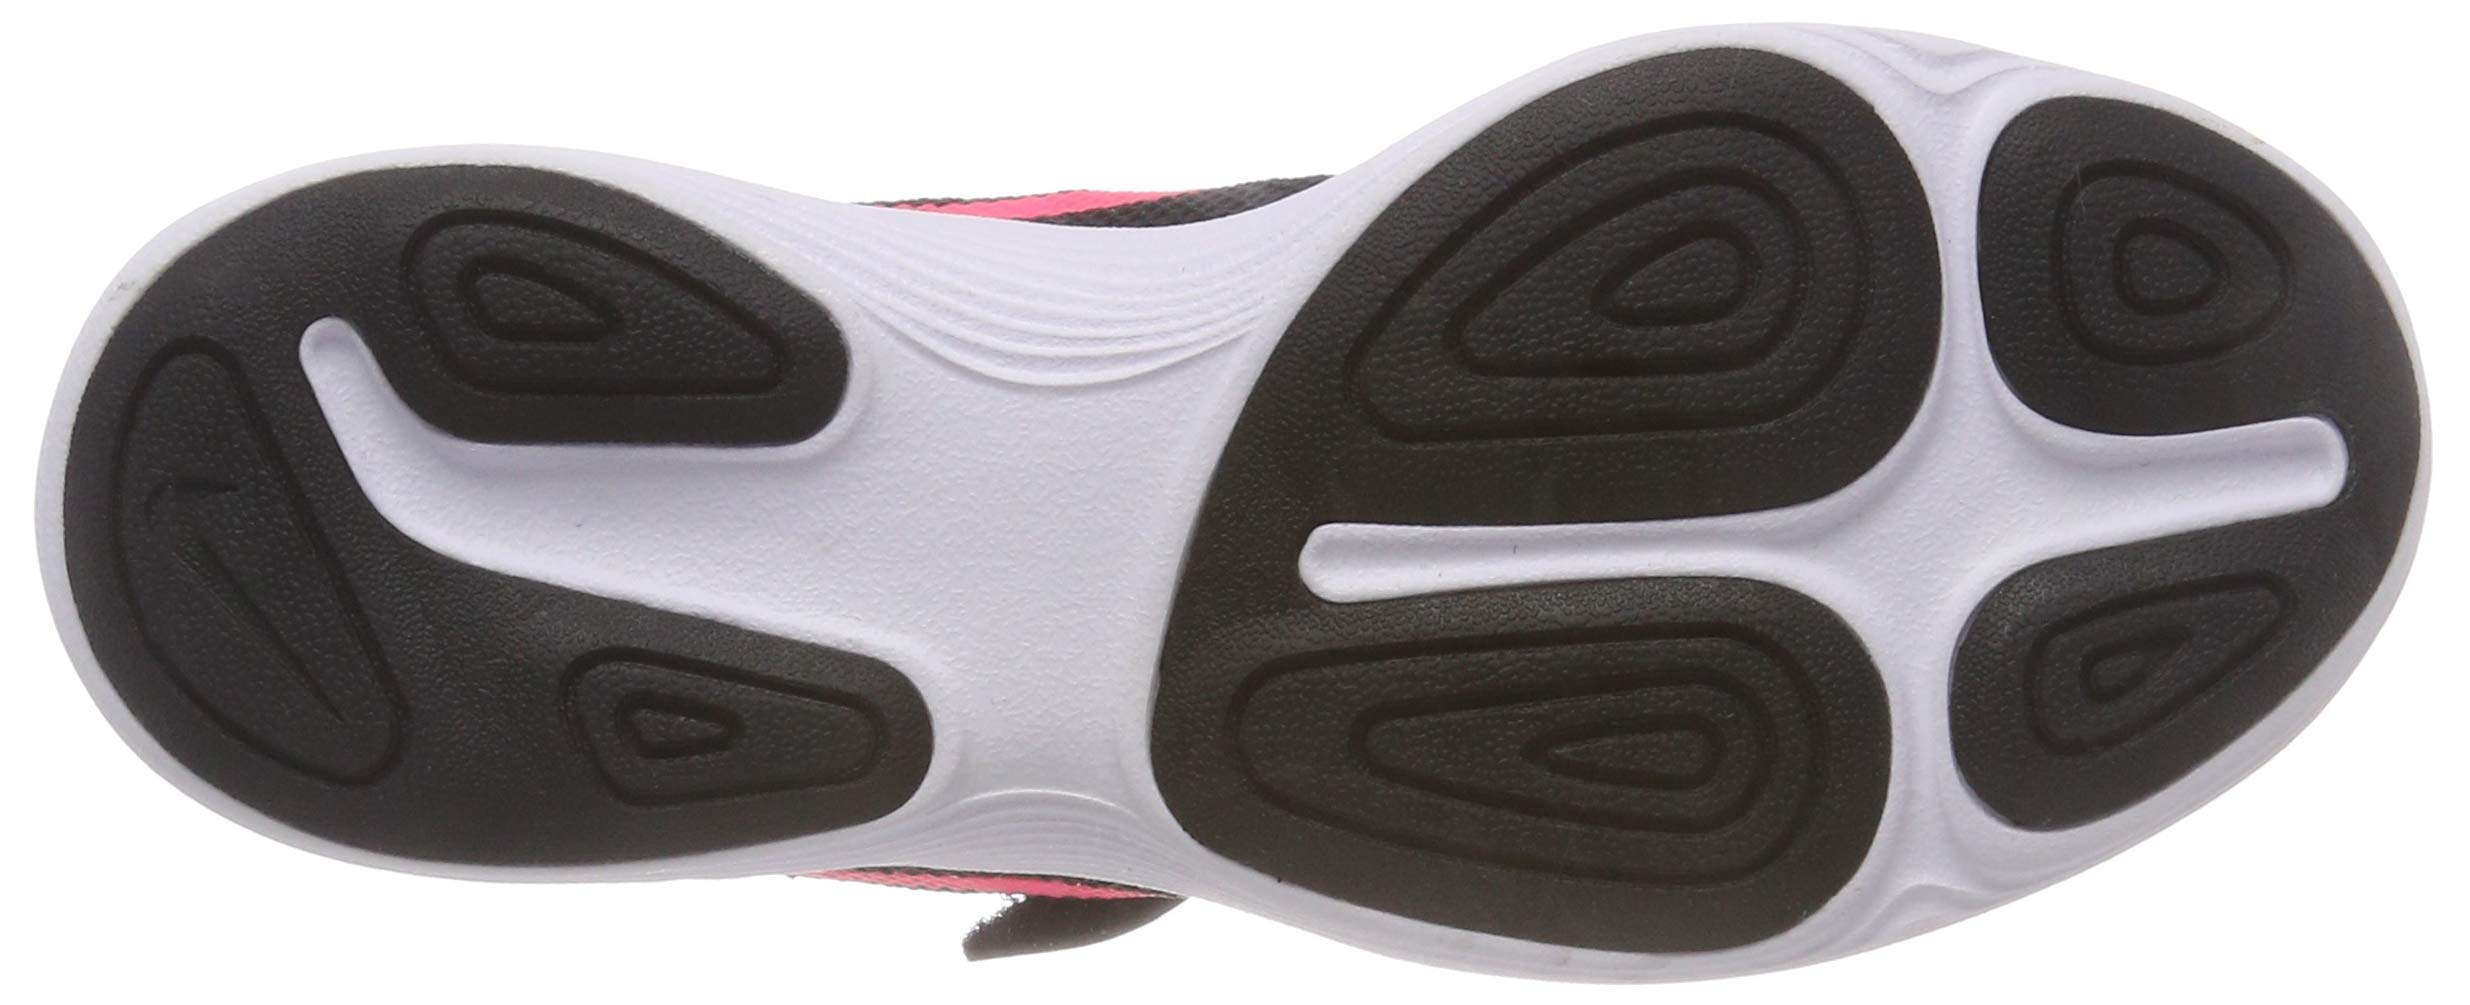 Nike Girls' Revolution 4 (PSV) Running Shoe, Black/Racer Pink - White, 12C Regular US Little Kid by Nike (Image #3)